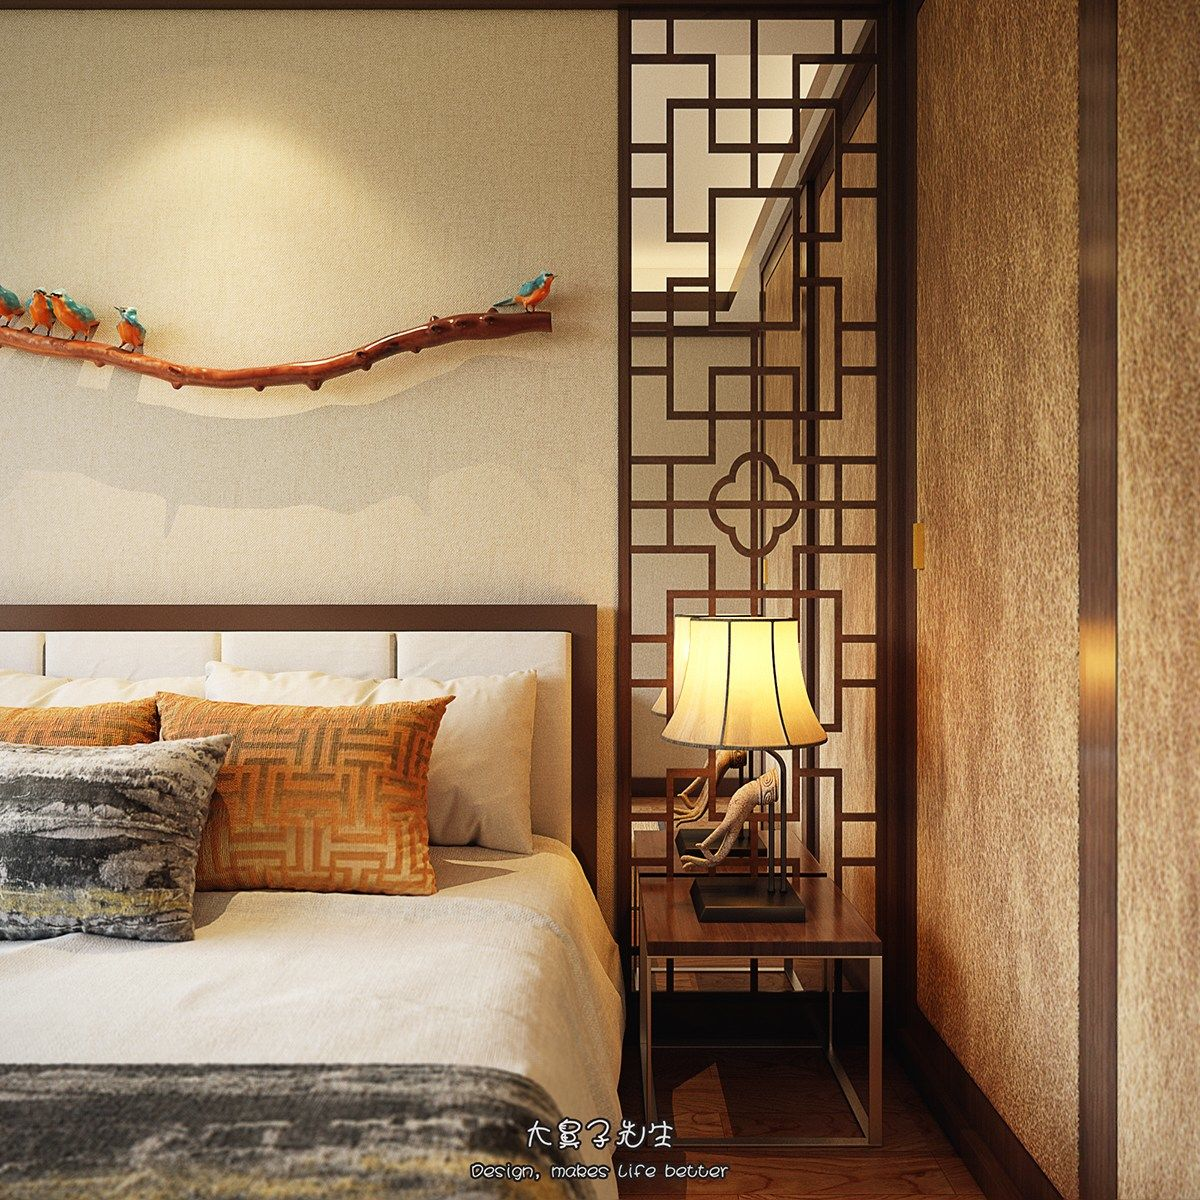 Modern Chinese Interior Design: Two Modern Interiors Inspired By Traditional Chinese Decor